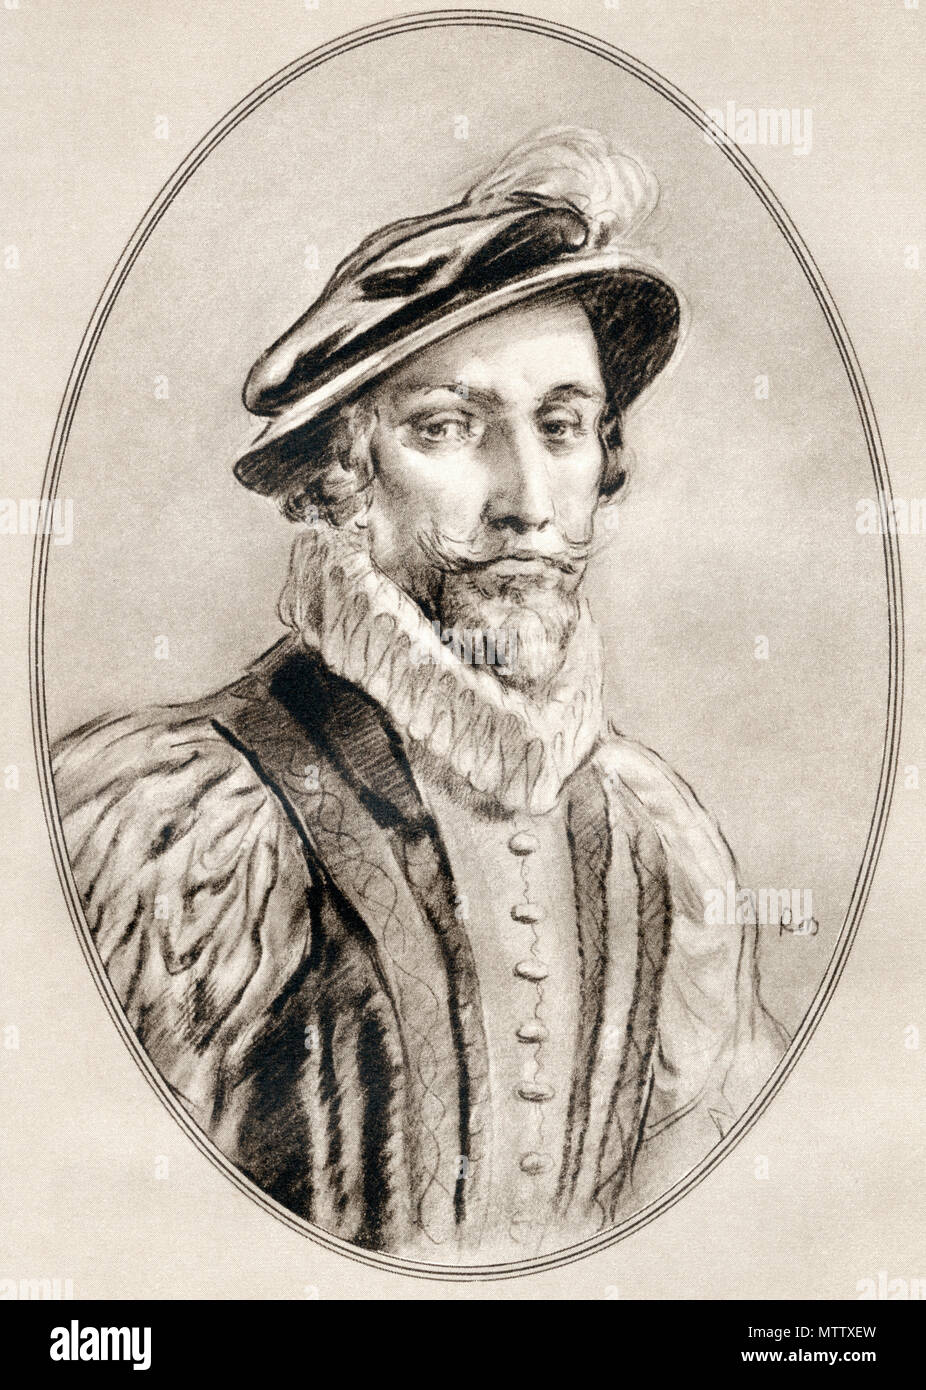 Sir Walter Raleigh,  c.1554 – 1618.  English landed gentleman, writer, poet, soldier, politician, courtier, spy and explorer.  Illustration by Gordon Ross, American artist and illustrator (1873-1946), from Living Biographies of Famous Men. - Stock Image